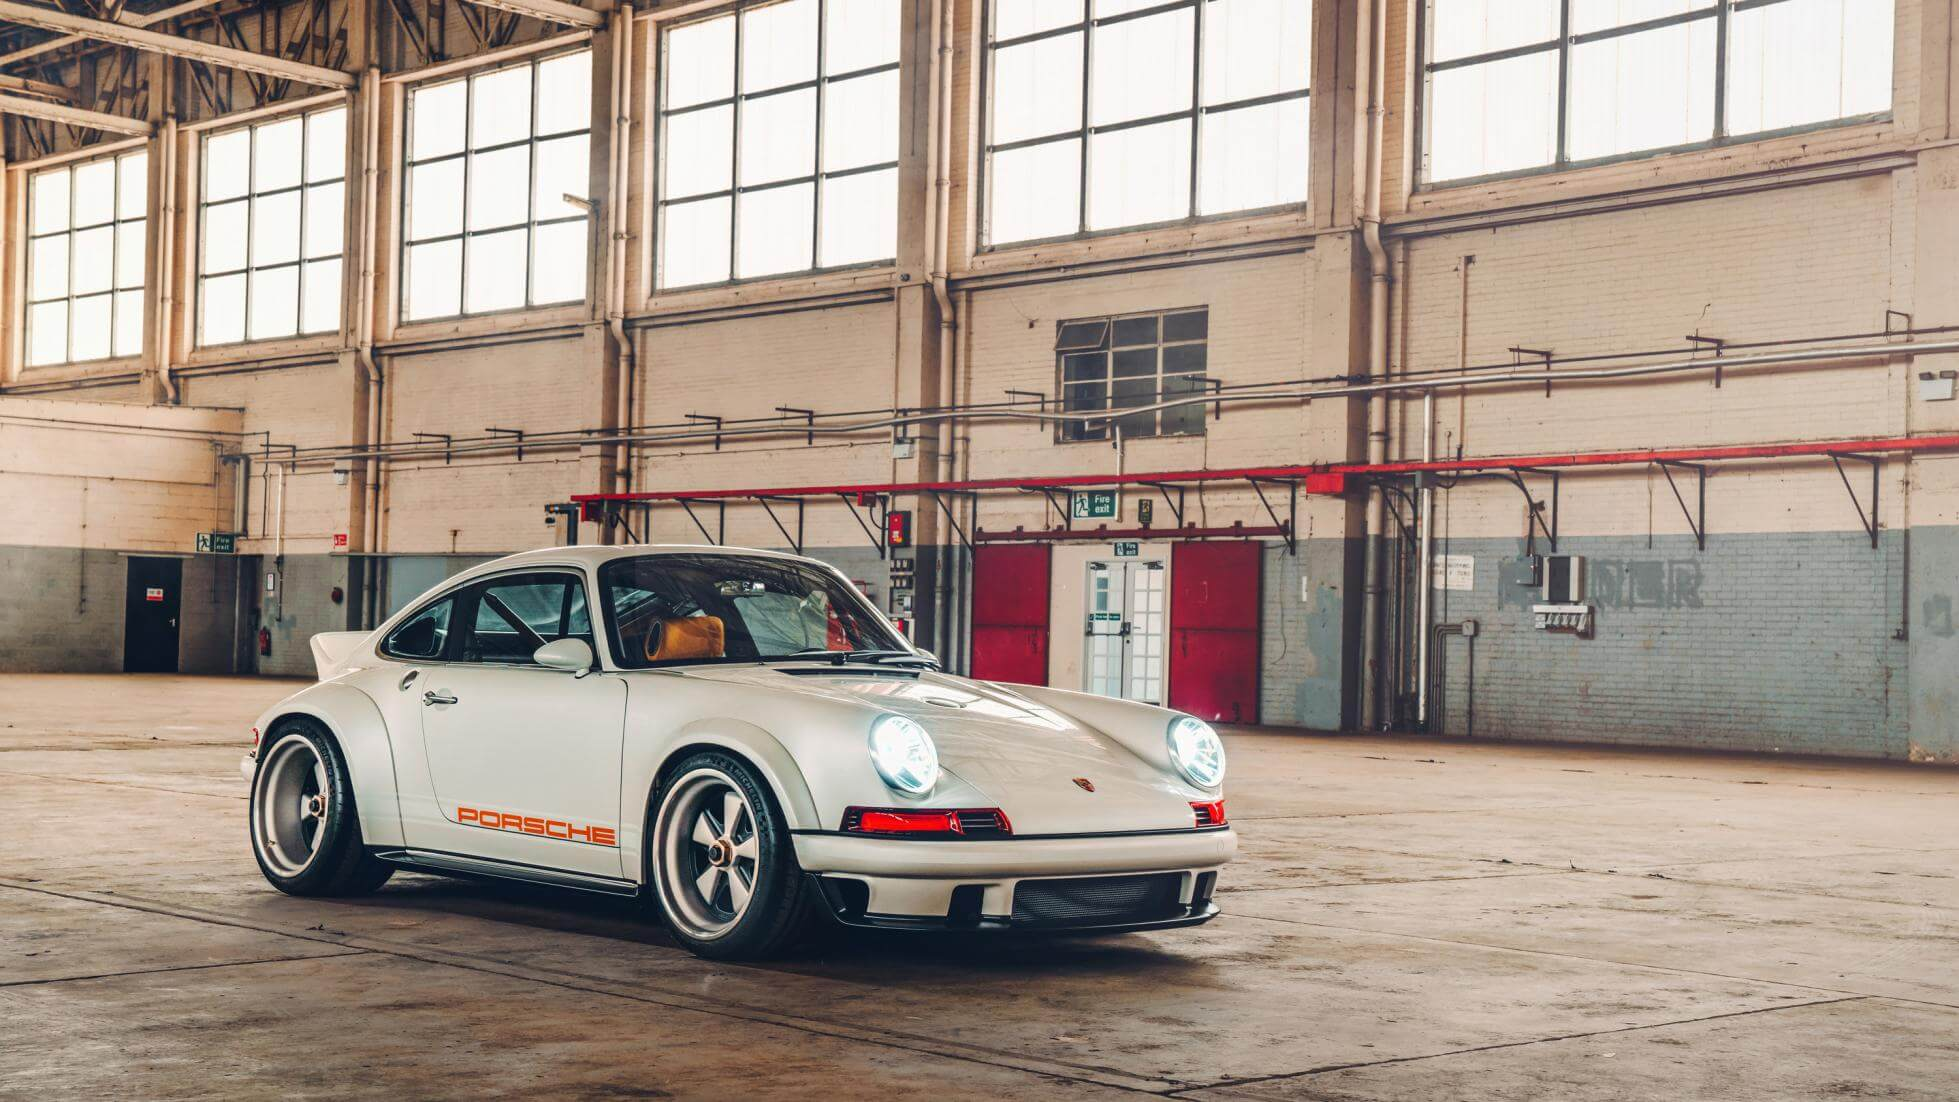 Porsche 911 - Singer Vehichle Design - Top Gear